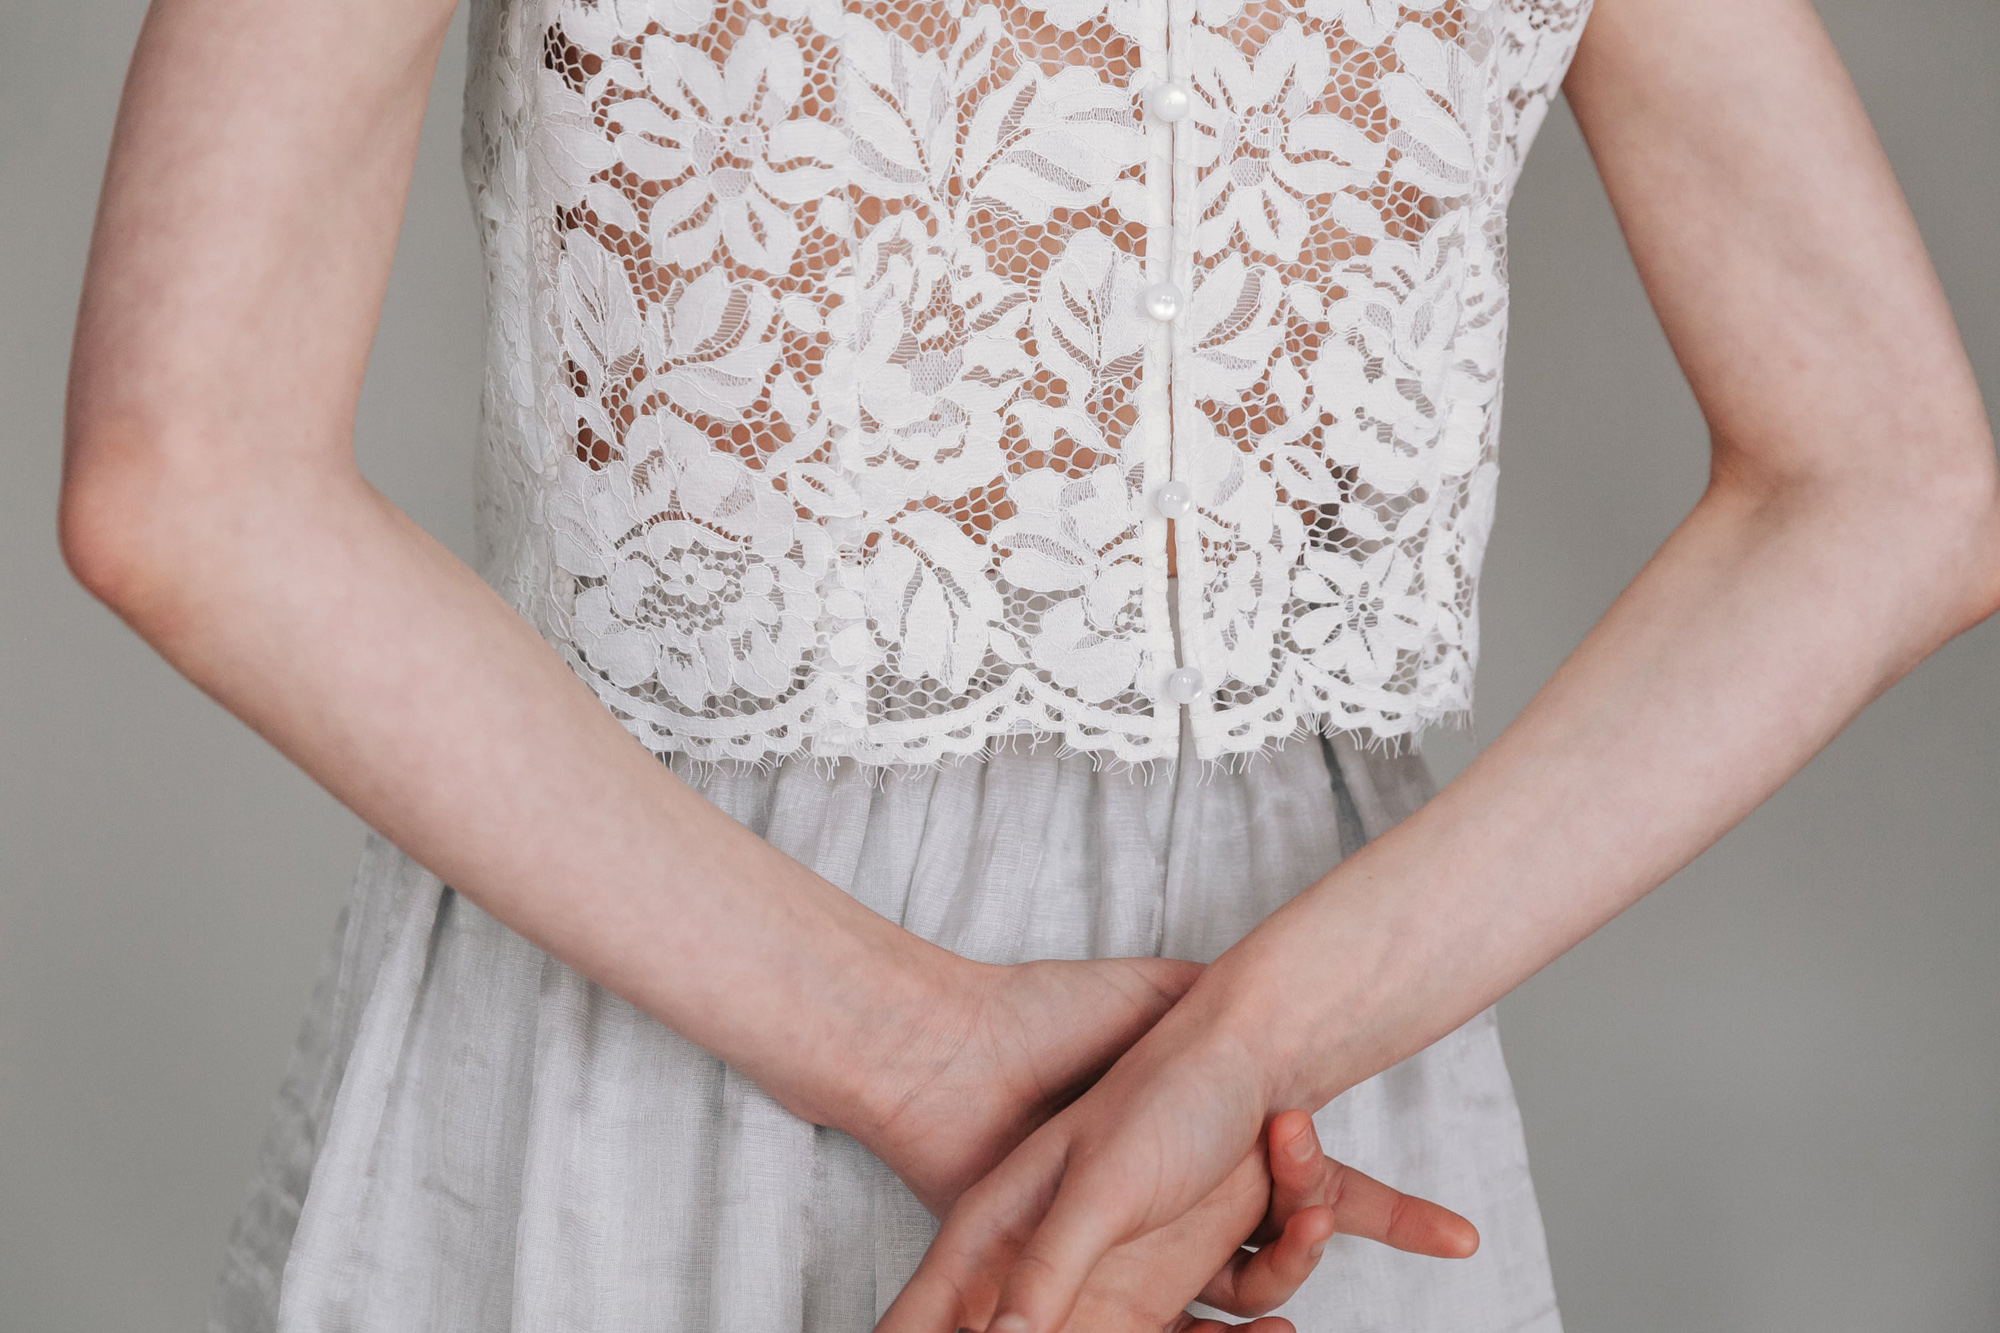 Kate-Beaumont-Sheffield-Hyacinth-Bridal-Separates-Tiered-Silver-Skirt-Lace-Top-Wedding-Gown-9.jpg